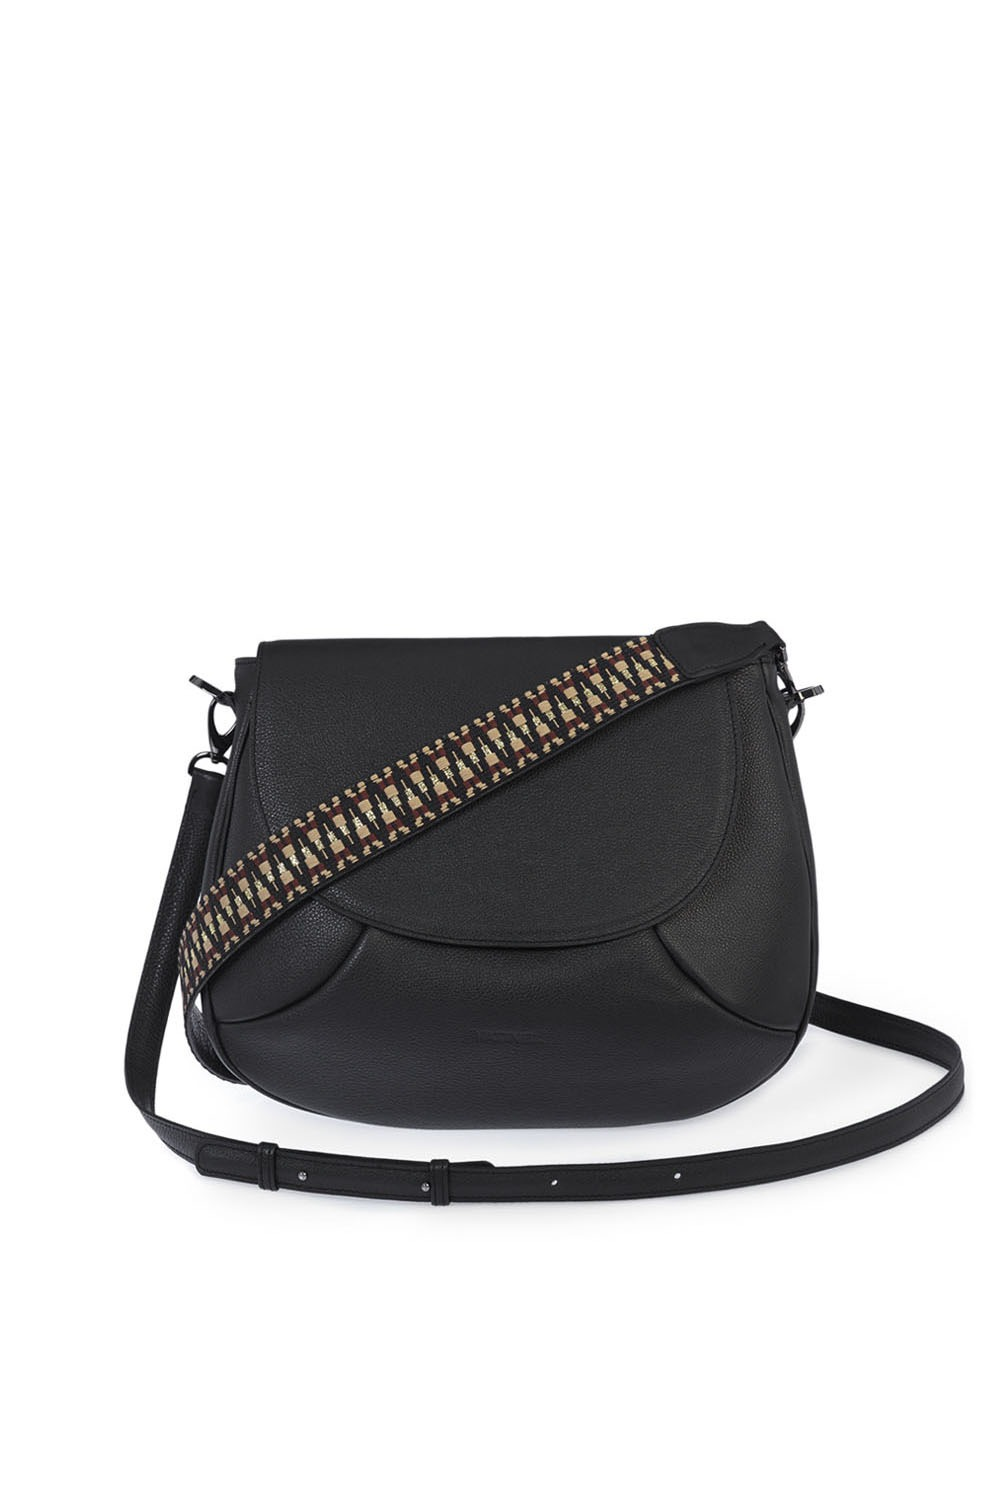 VATINEL HANDBAGS BRUSSELS BLACK